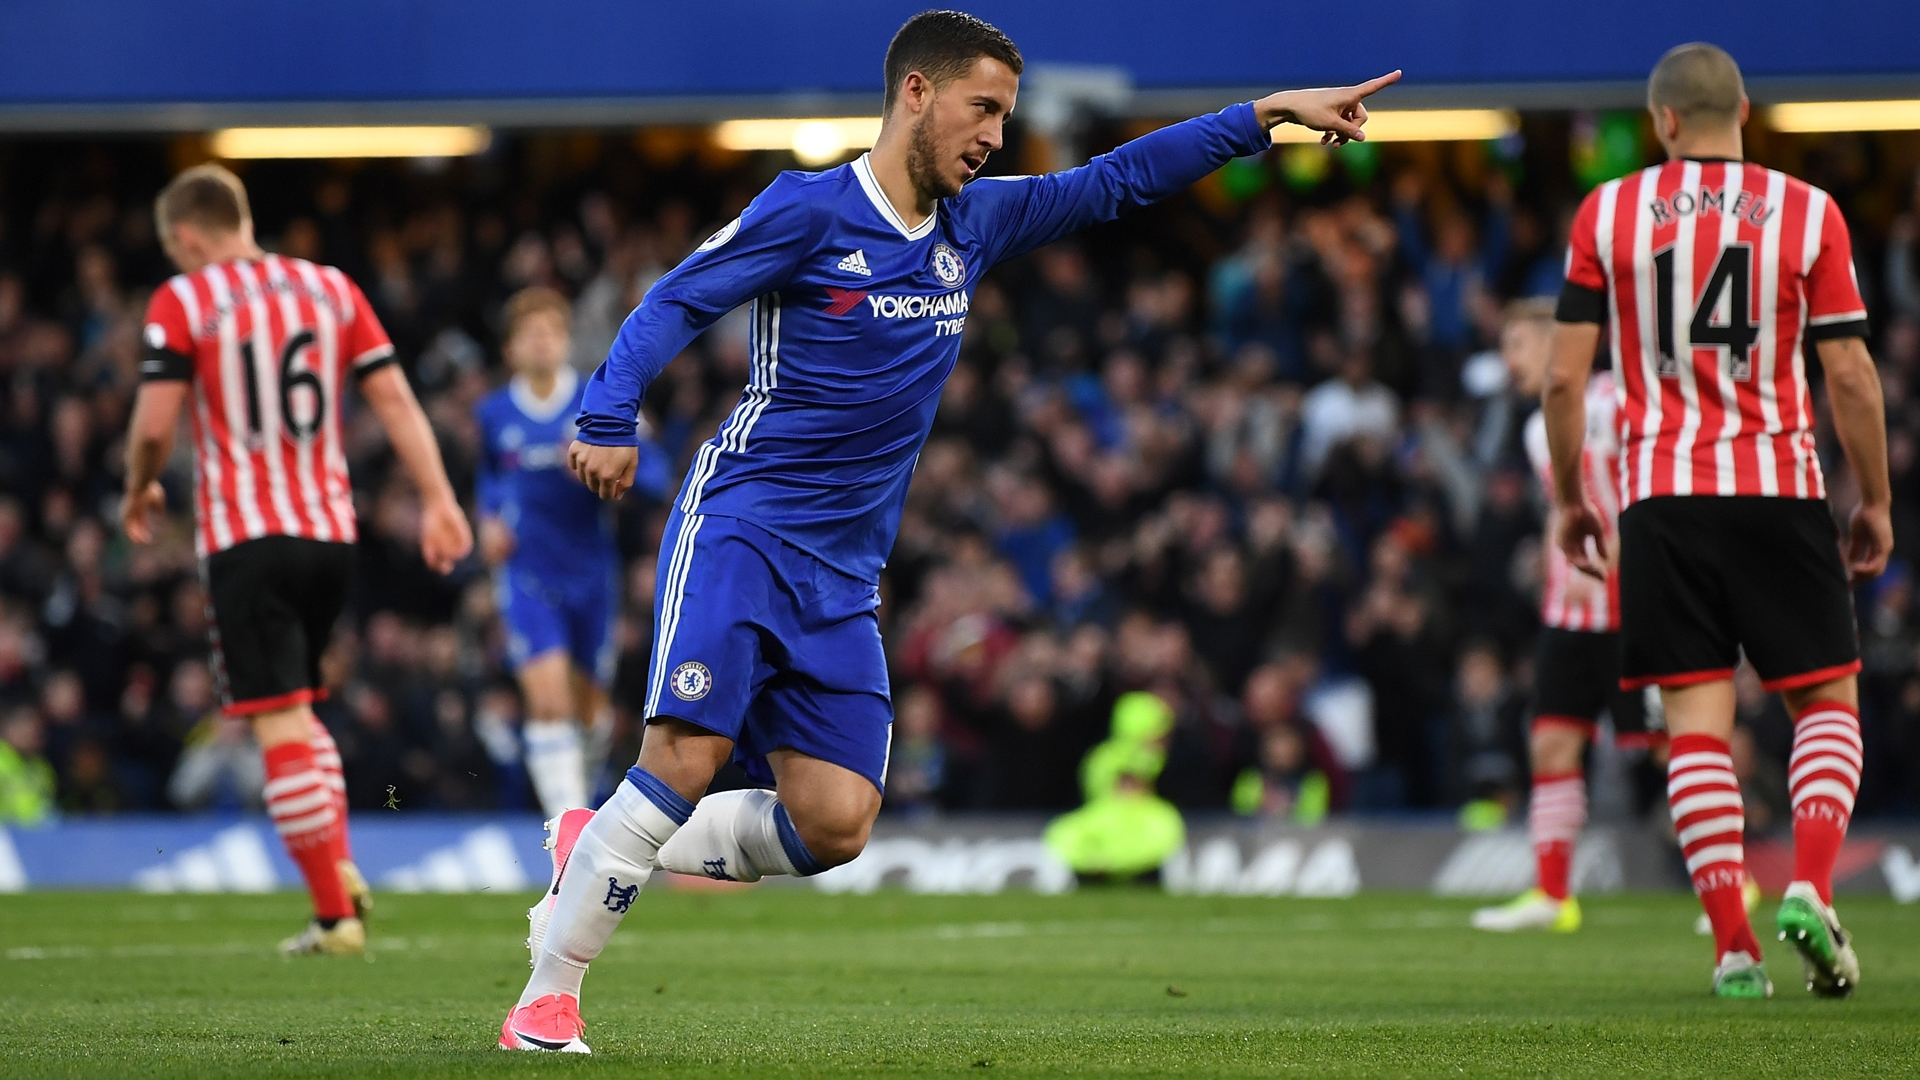 Hazard says he will soon discuss his future at the club with Chelsea's board